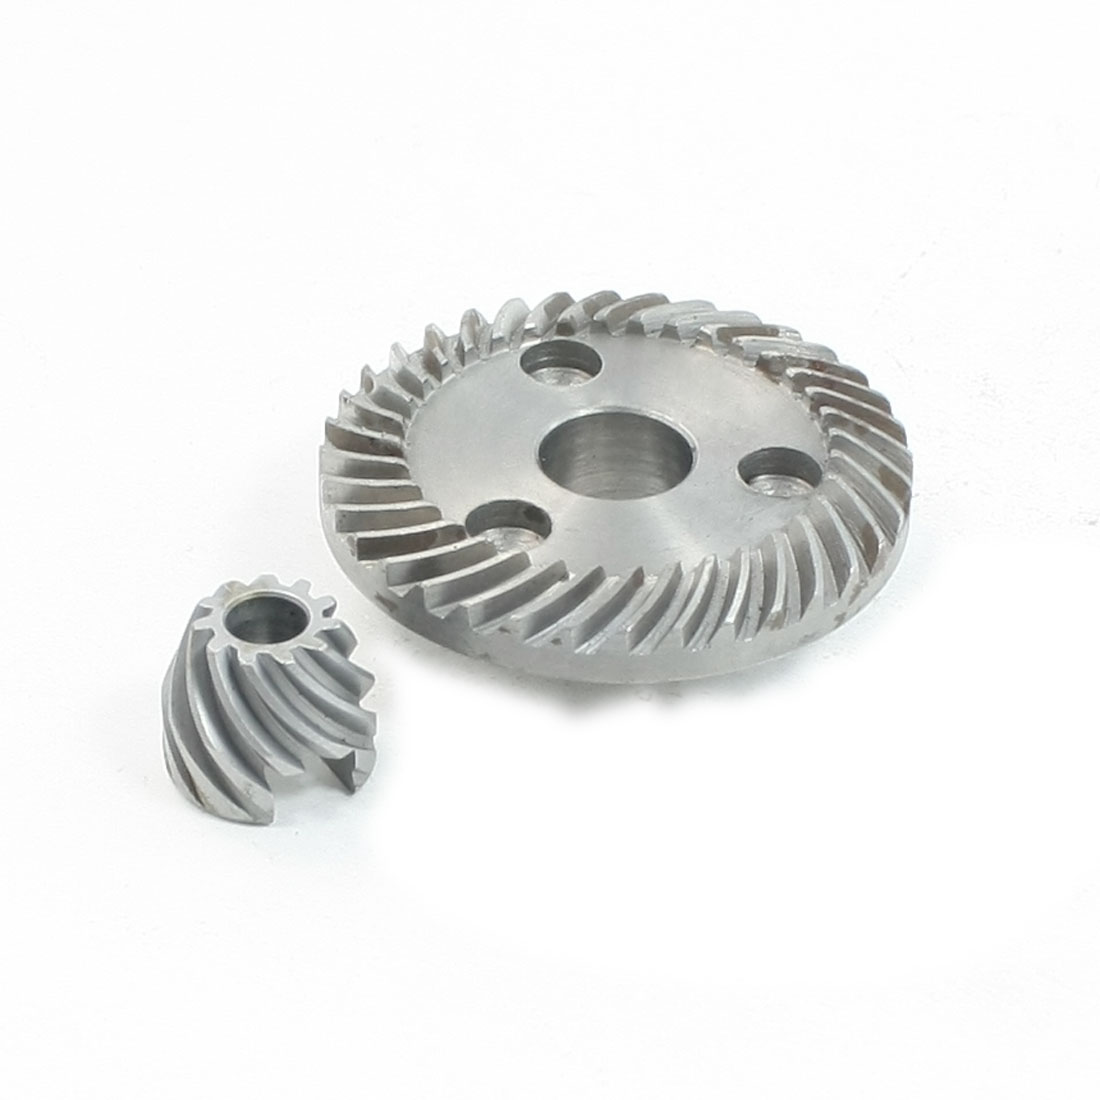 Electric Tool Part Spiral Bevel Gear Set for Makita 9523B Angle Grinder